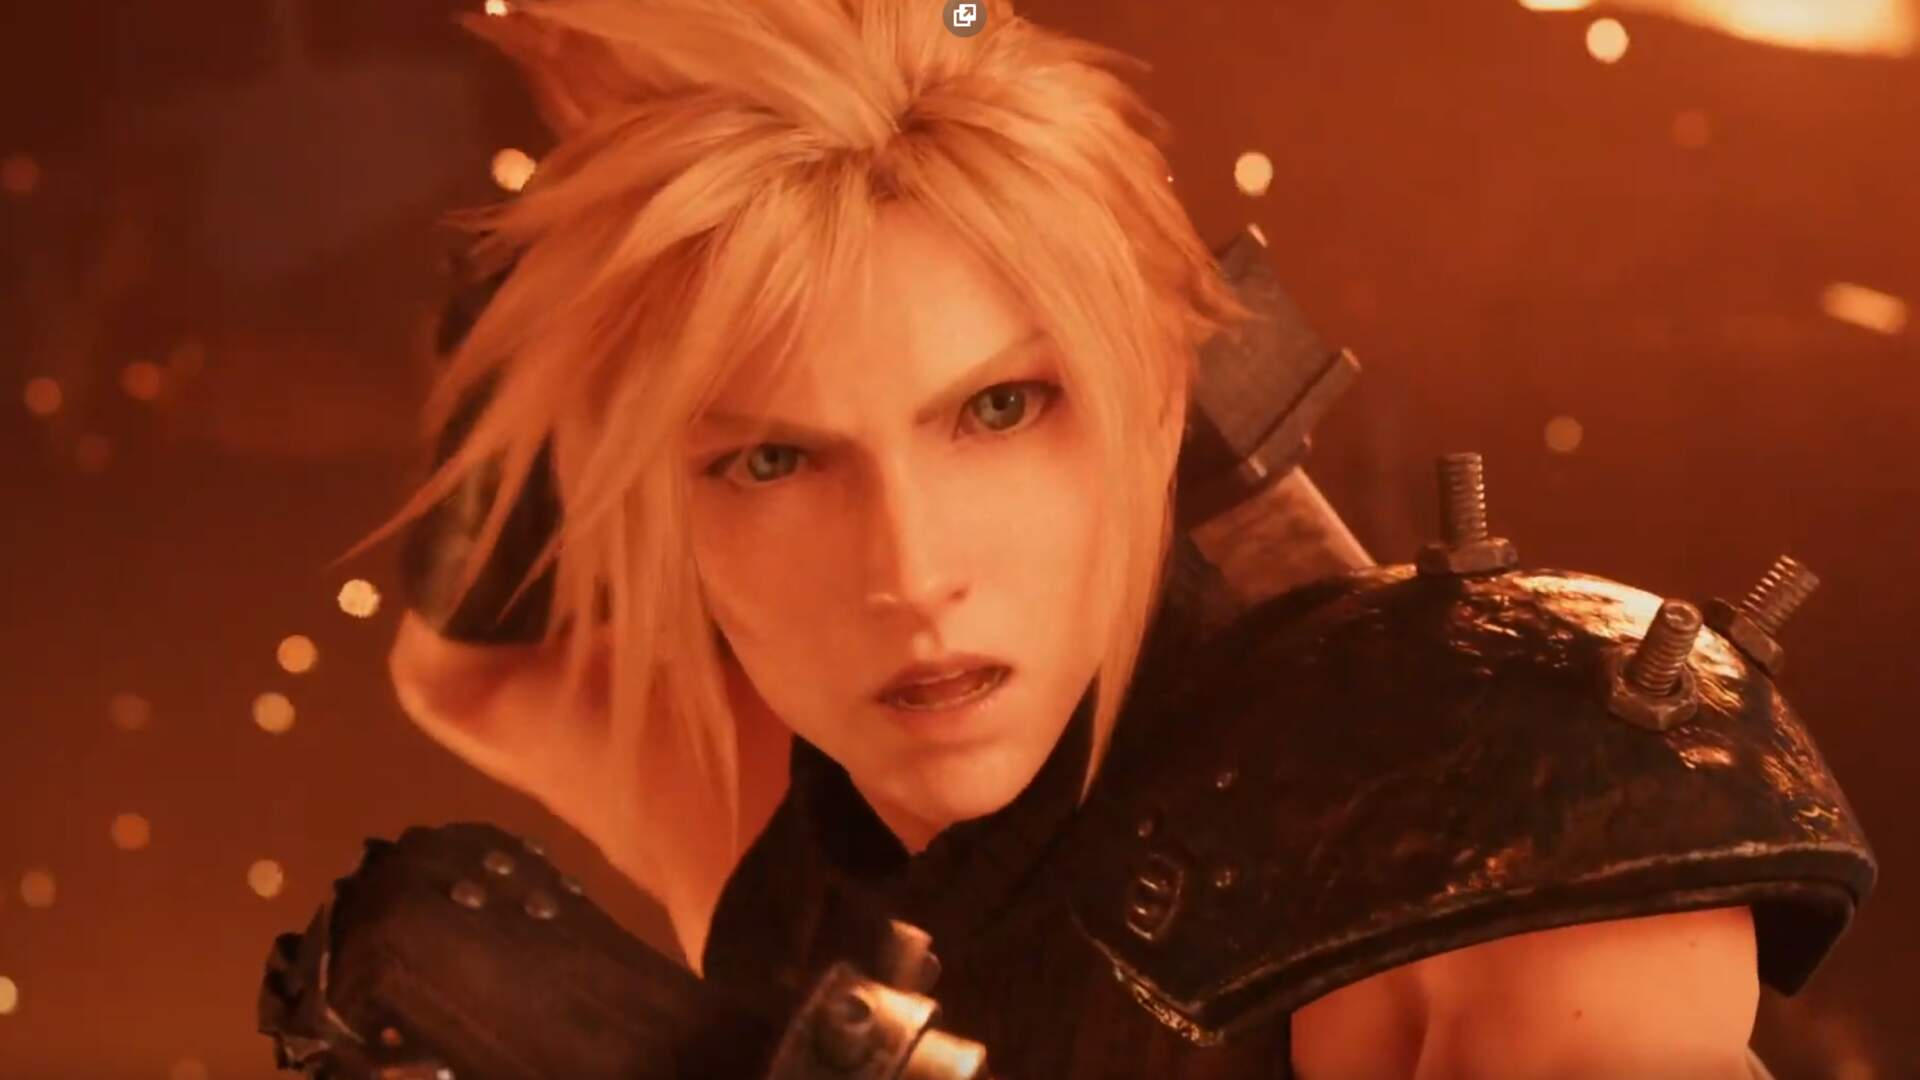 Square Enix E3 2019 Press Conference - Watch the Live Stream Here